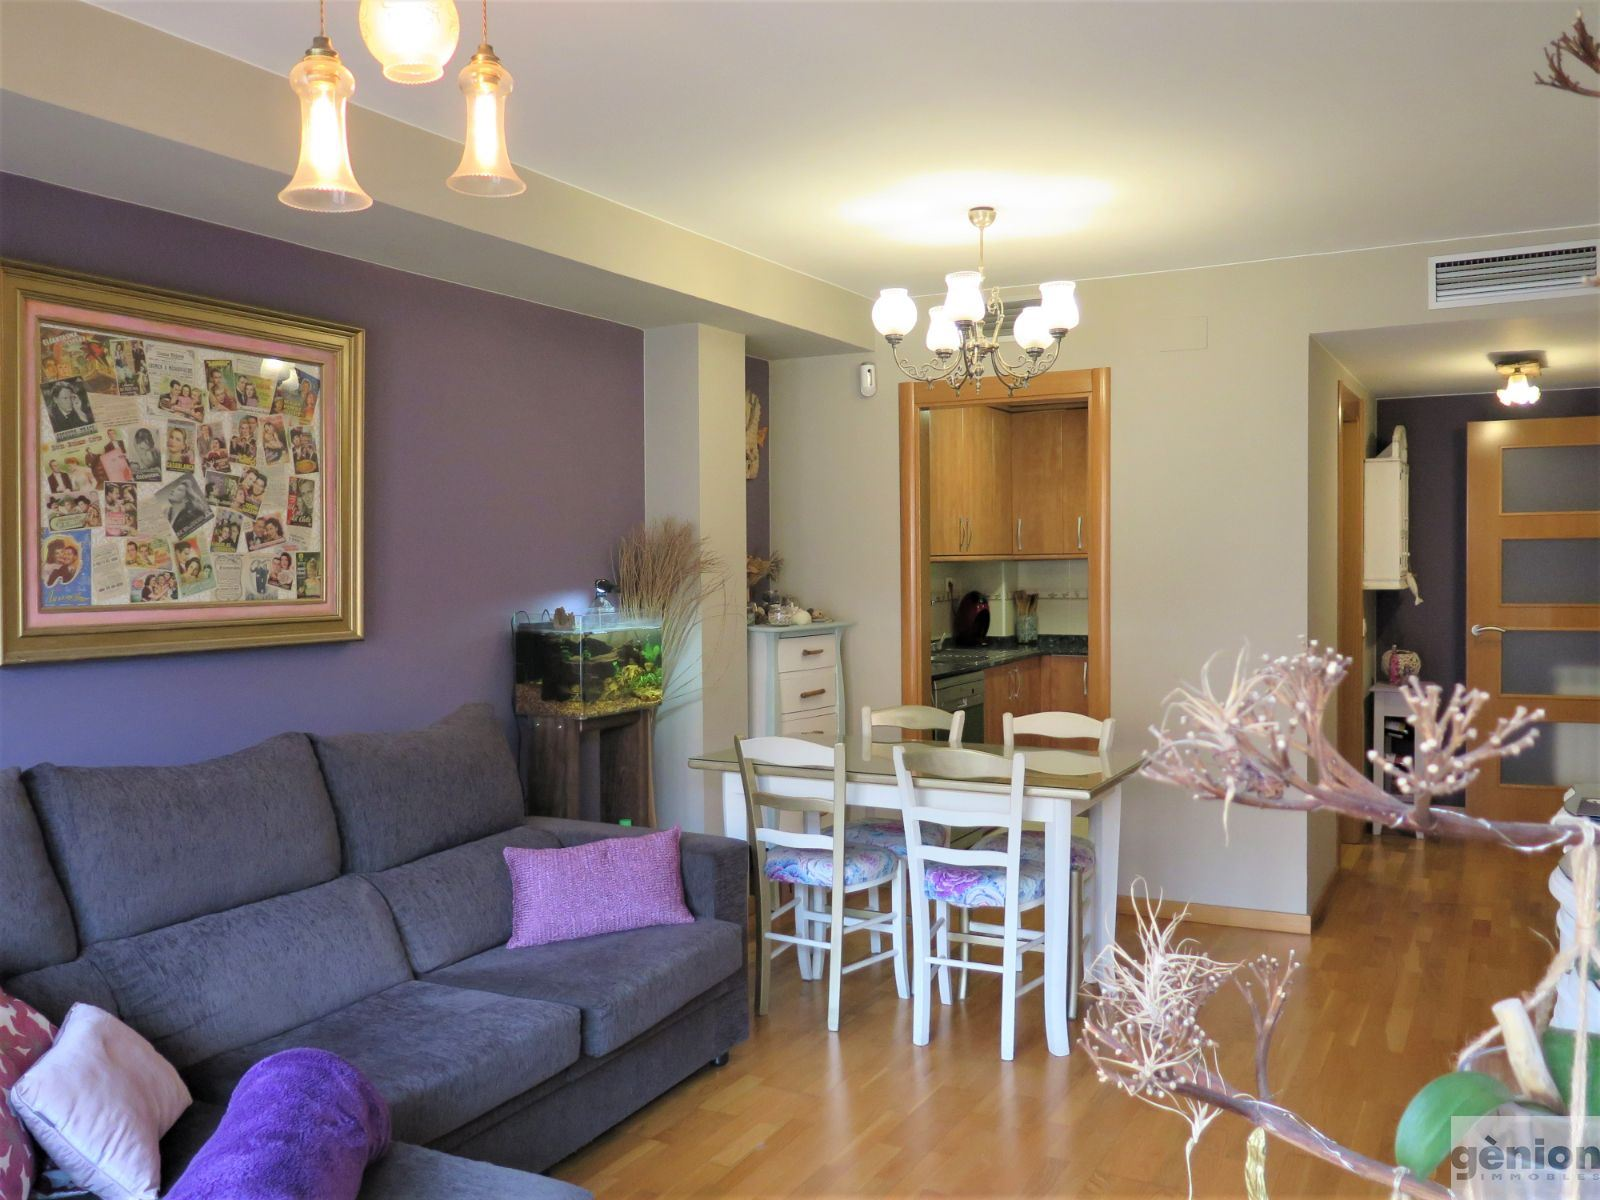 THREE-BEDROOM APARTMENT WITH 2 BATHROOMS AND TERRACE IN GIRONA'S LA DEVESA DISTRICT. OPTIONAL PARKING PLACE